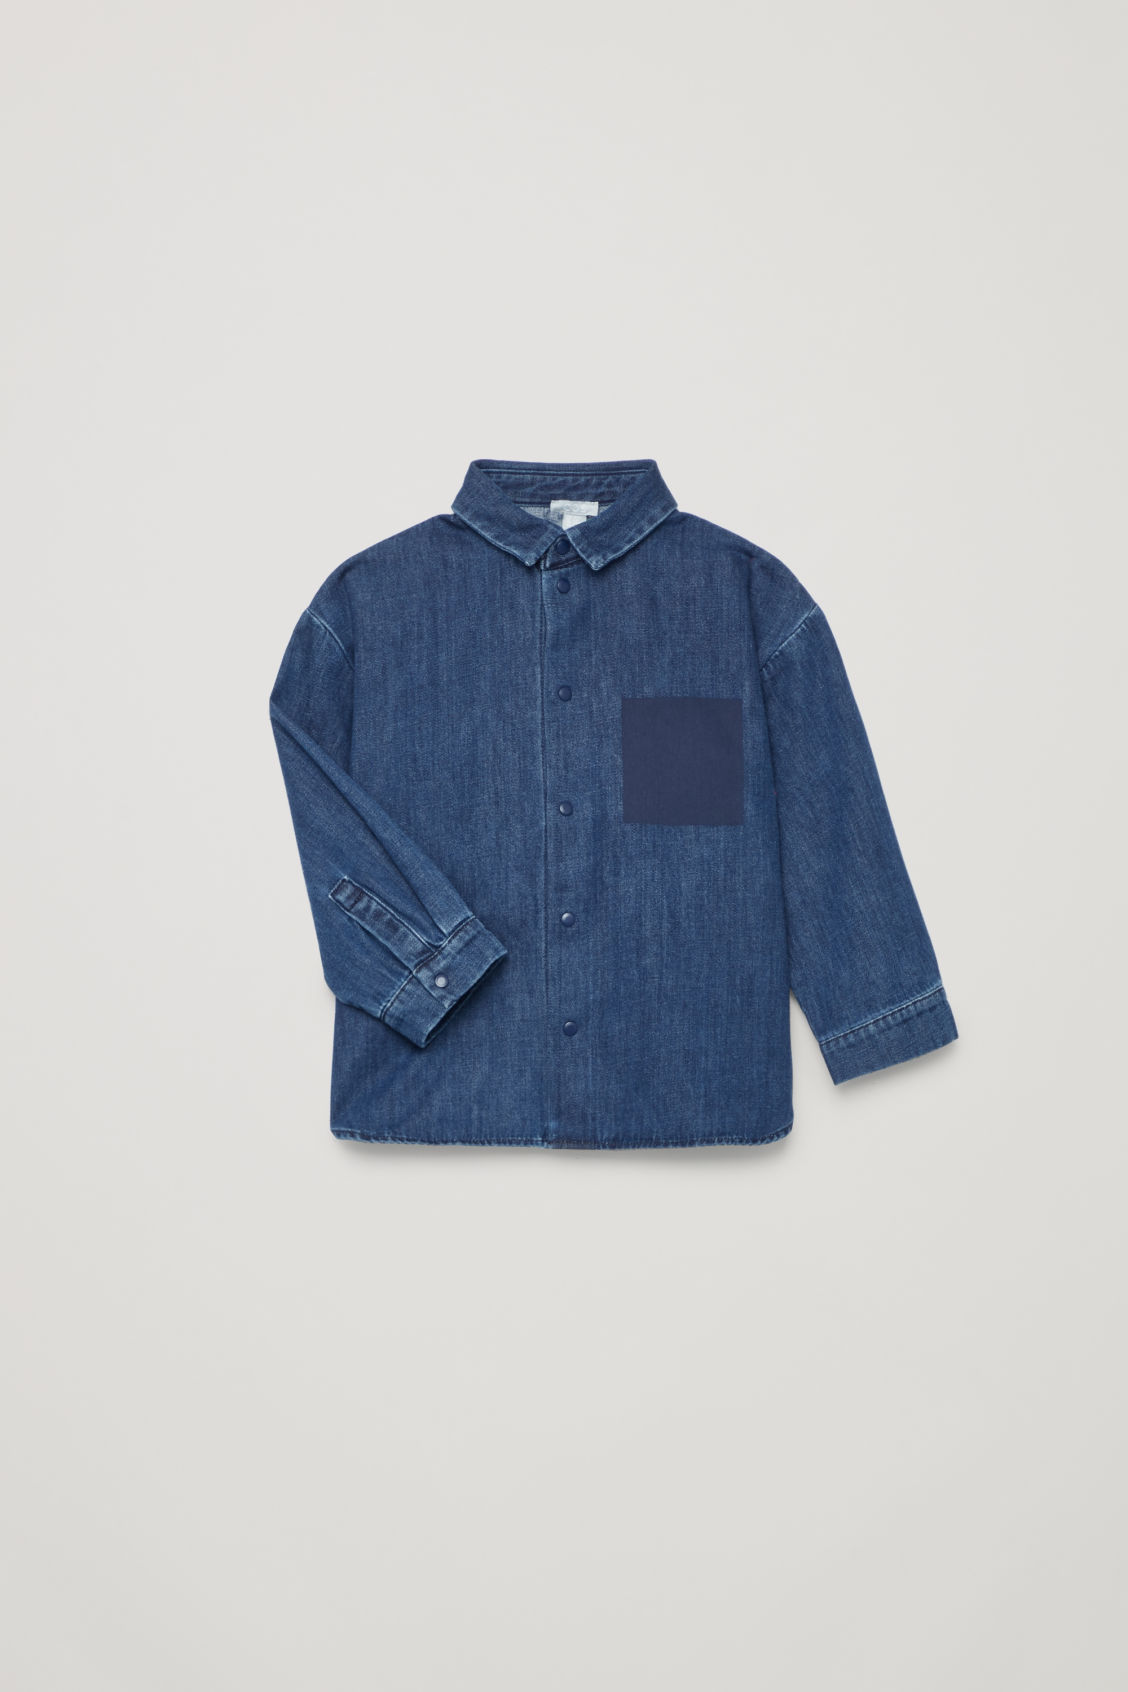 Detailed image of Cos denim shirt with fake pocket in blue